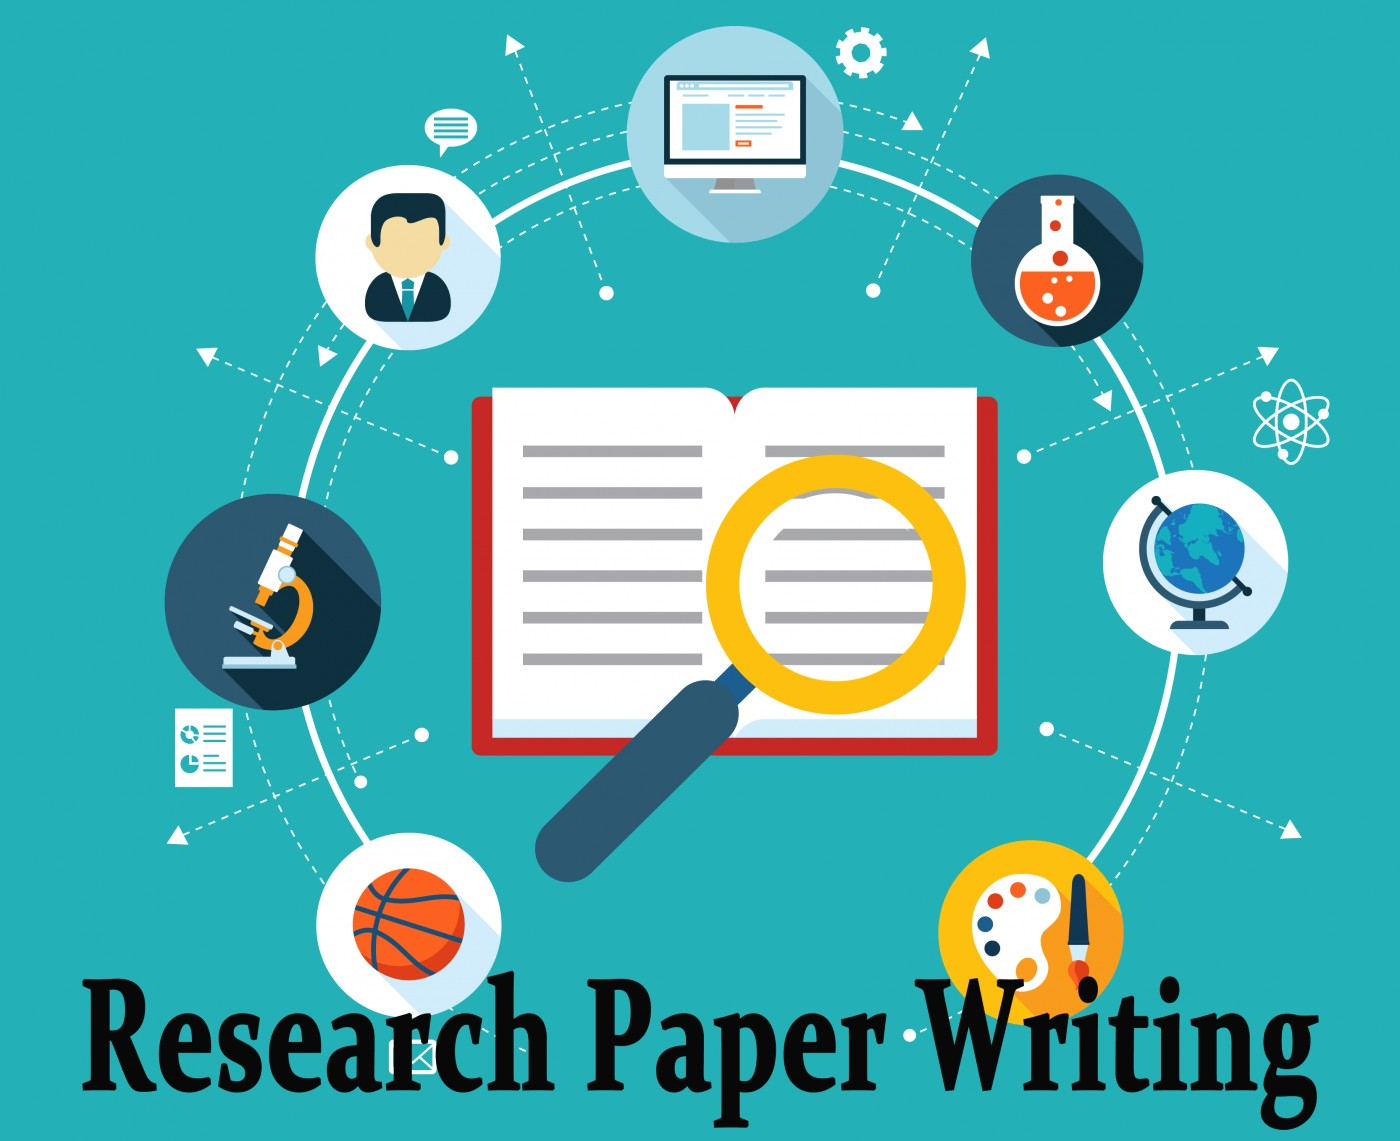 014 503 Effective Research Writing Researchs Fascinating Papers Best Paper Services In India Pakistan Format Example Apa 1400